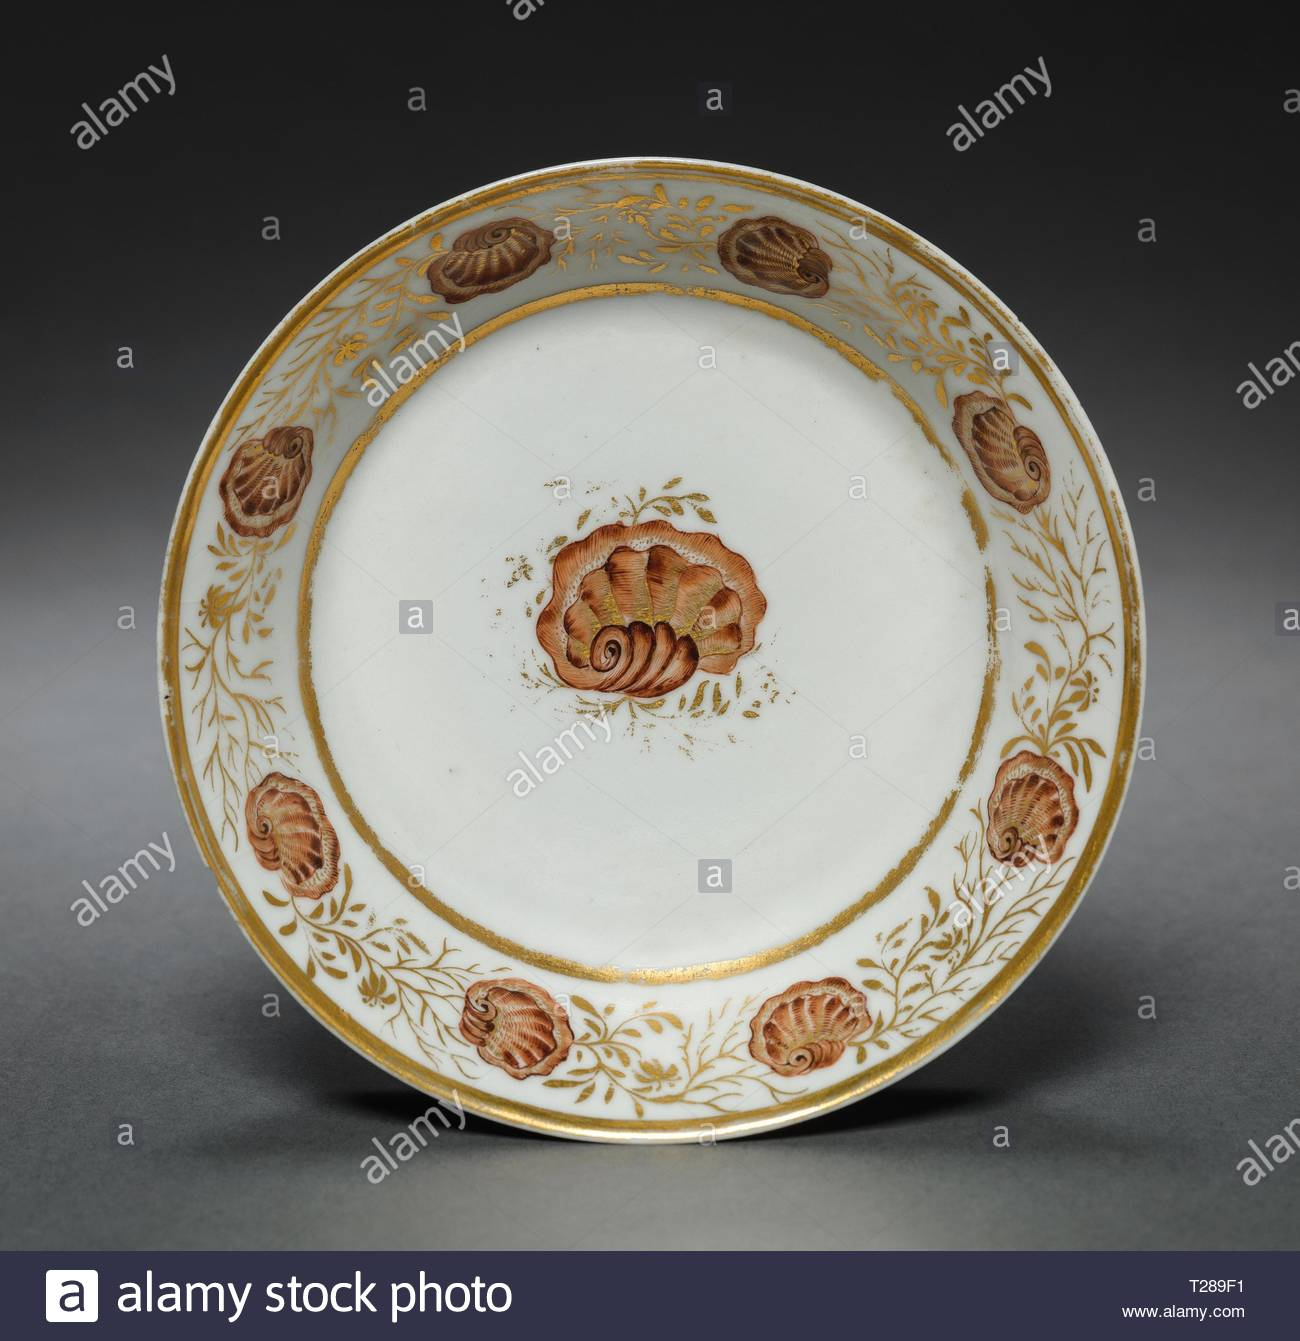 Antiques 19th Century Chinese Export Porcelain Tea Bowl & Saucer Easy To Use Radient Antique 18th